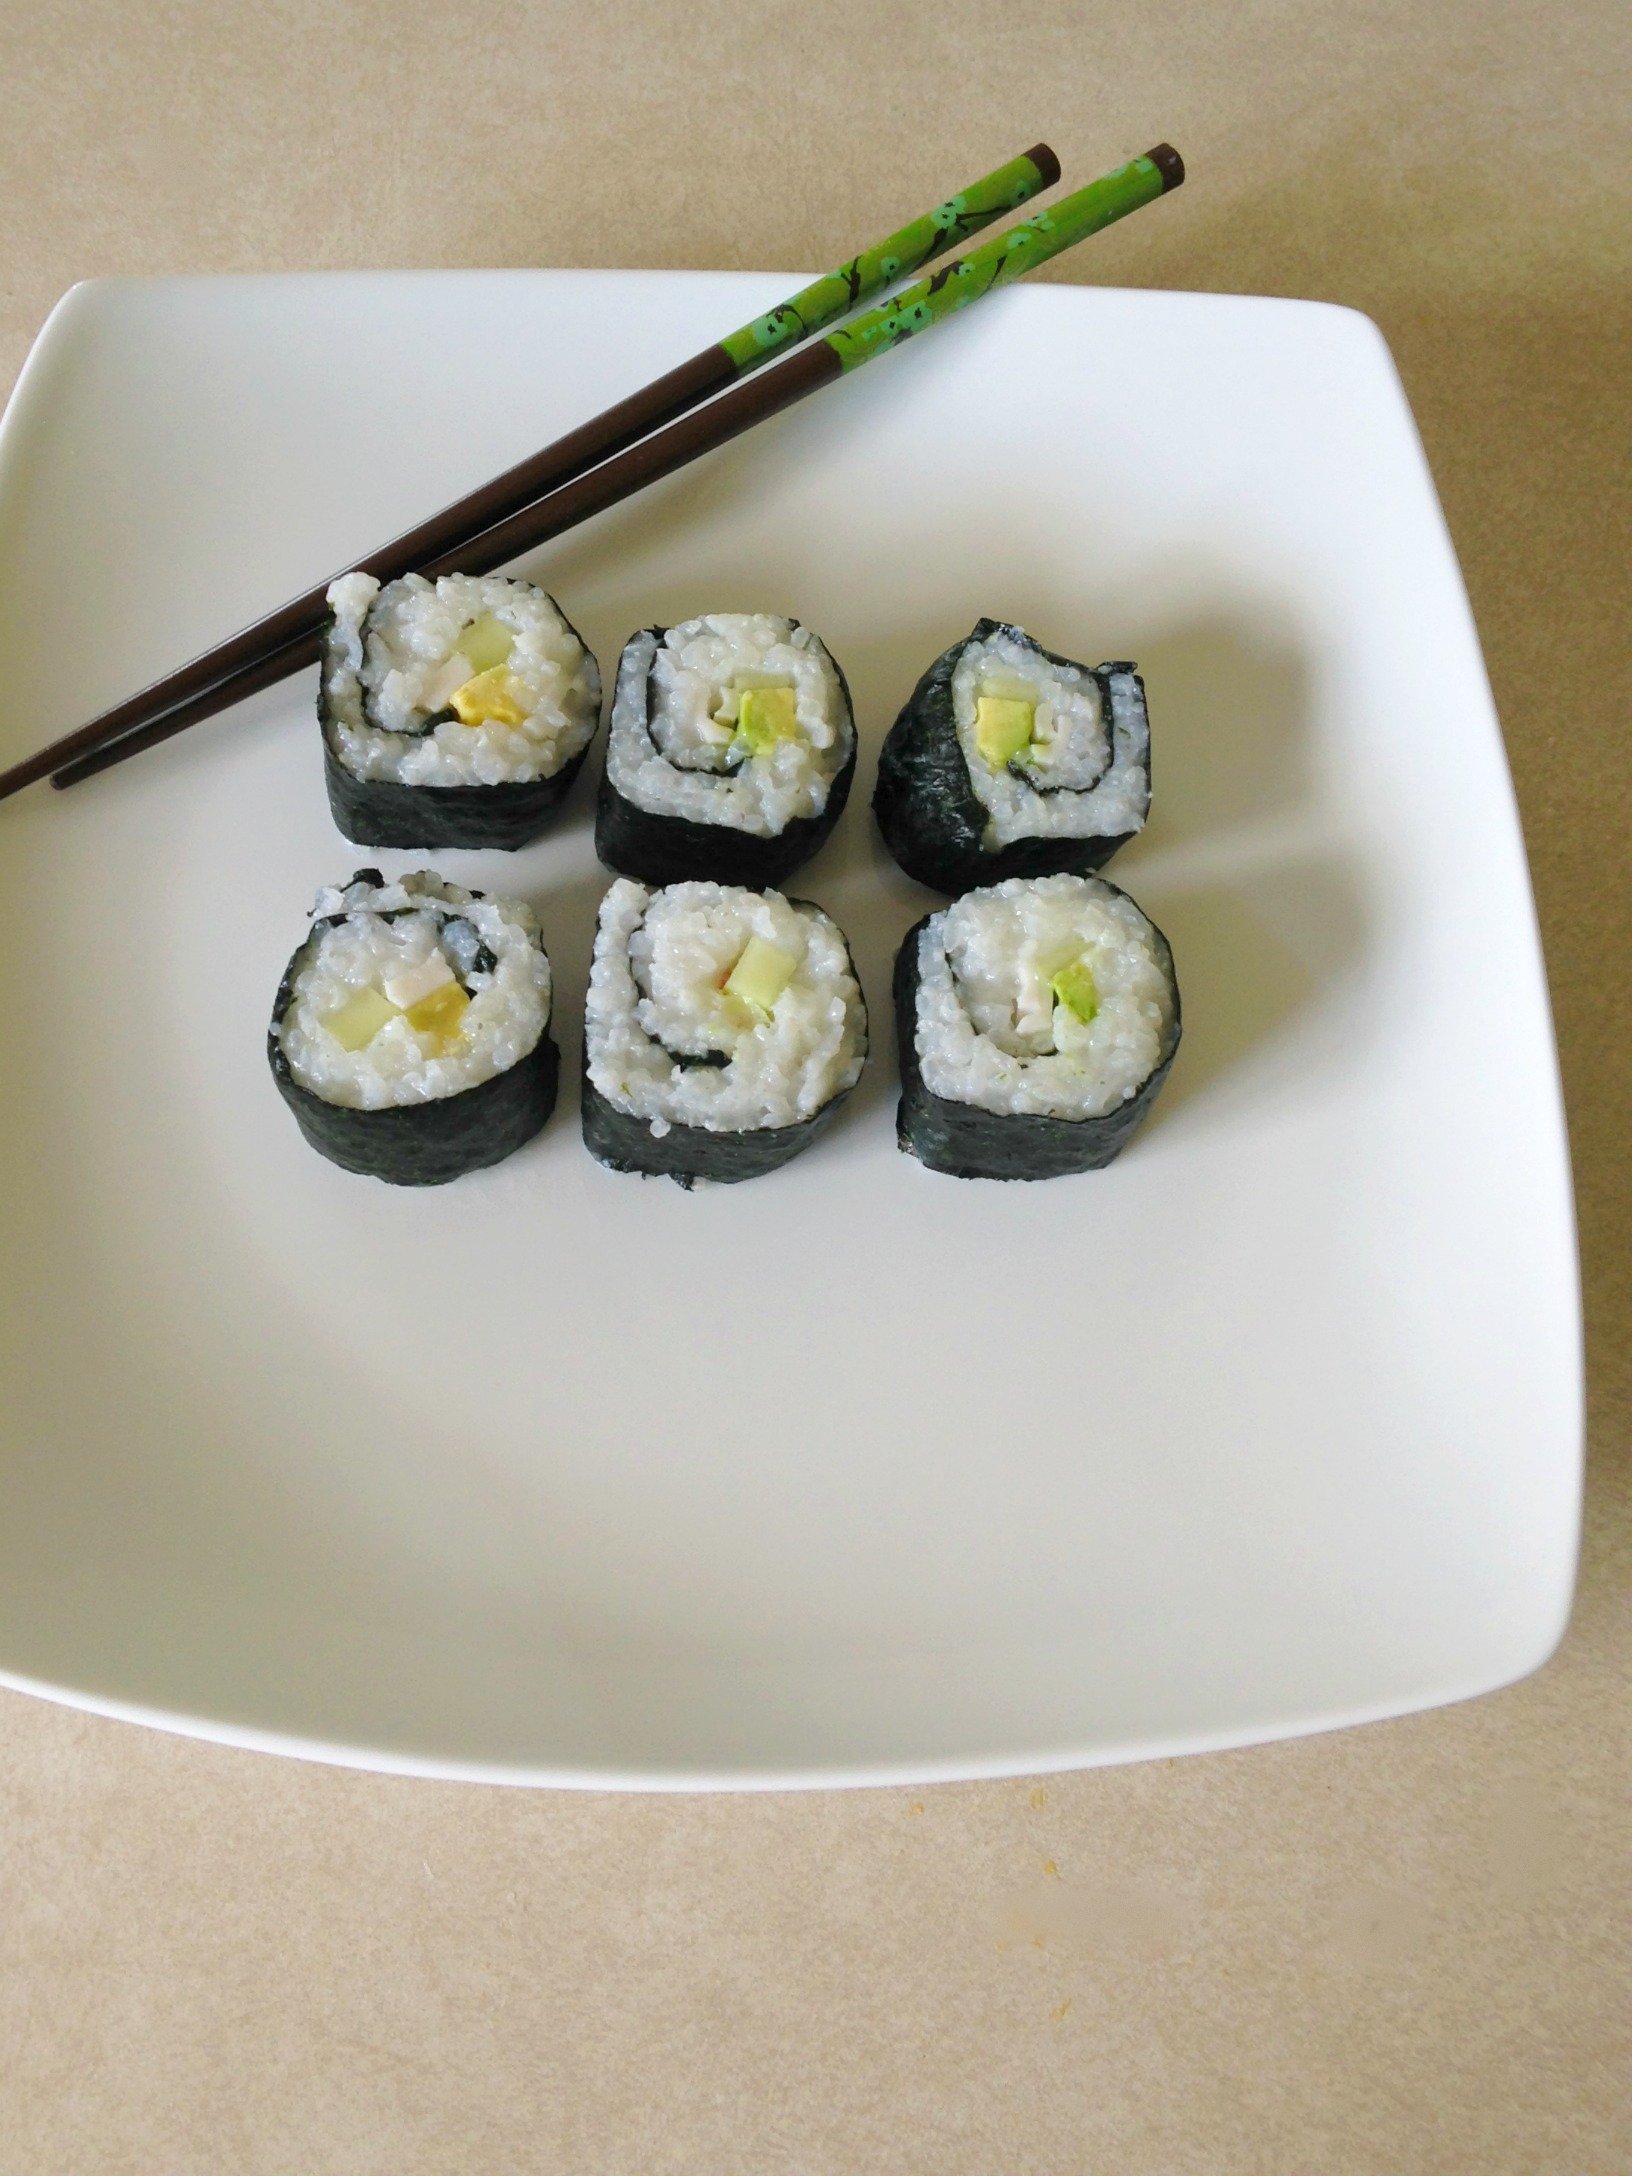 Make your own Sushi Easily with SushiQuik